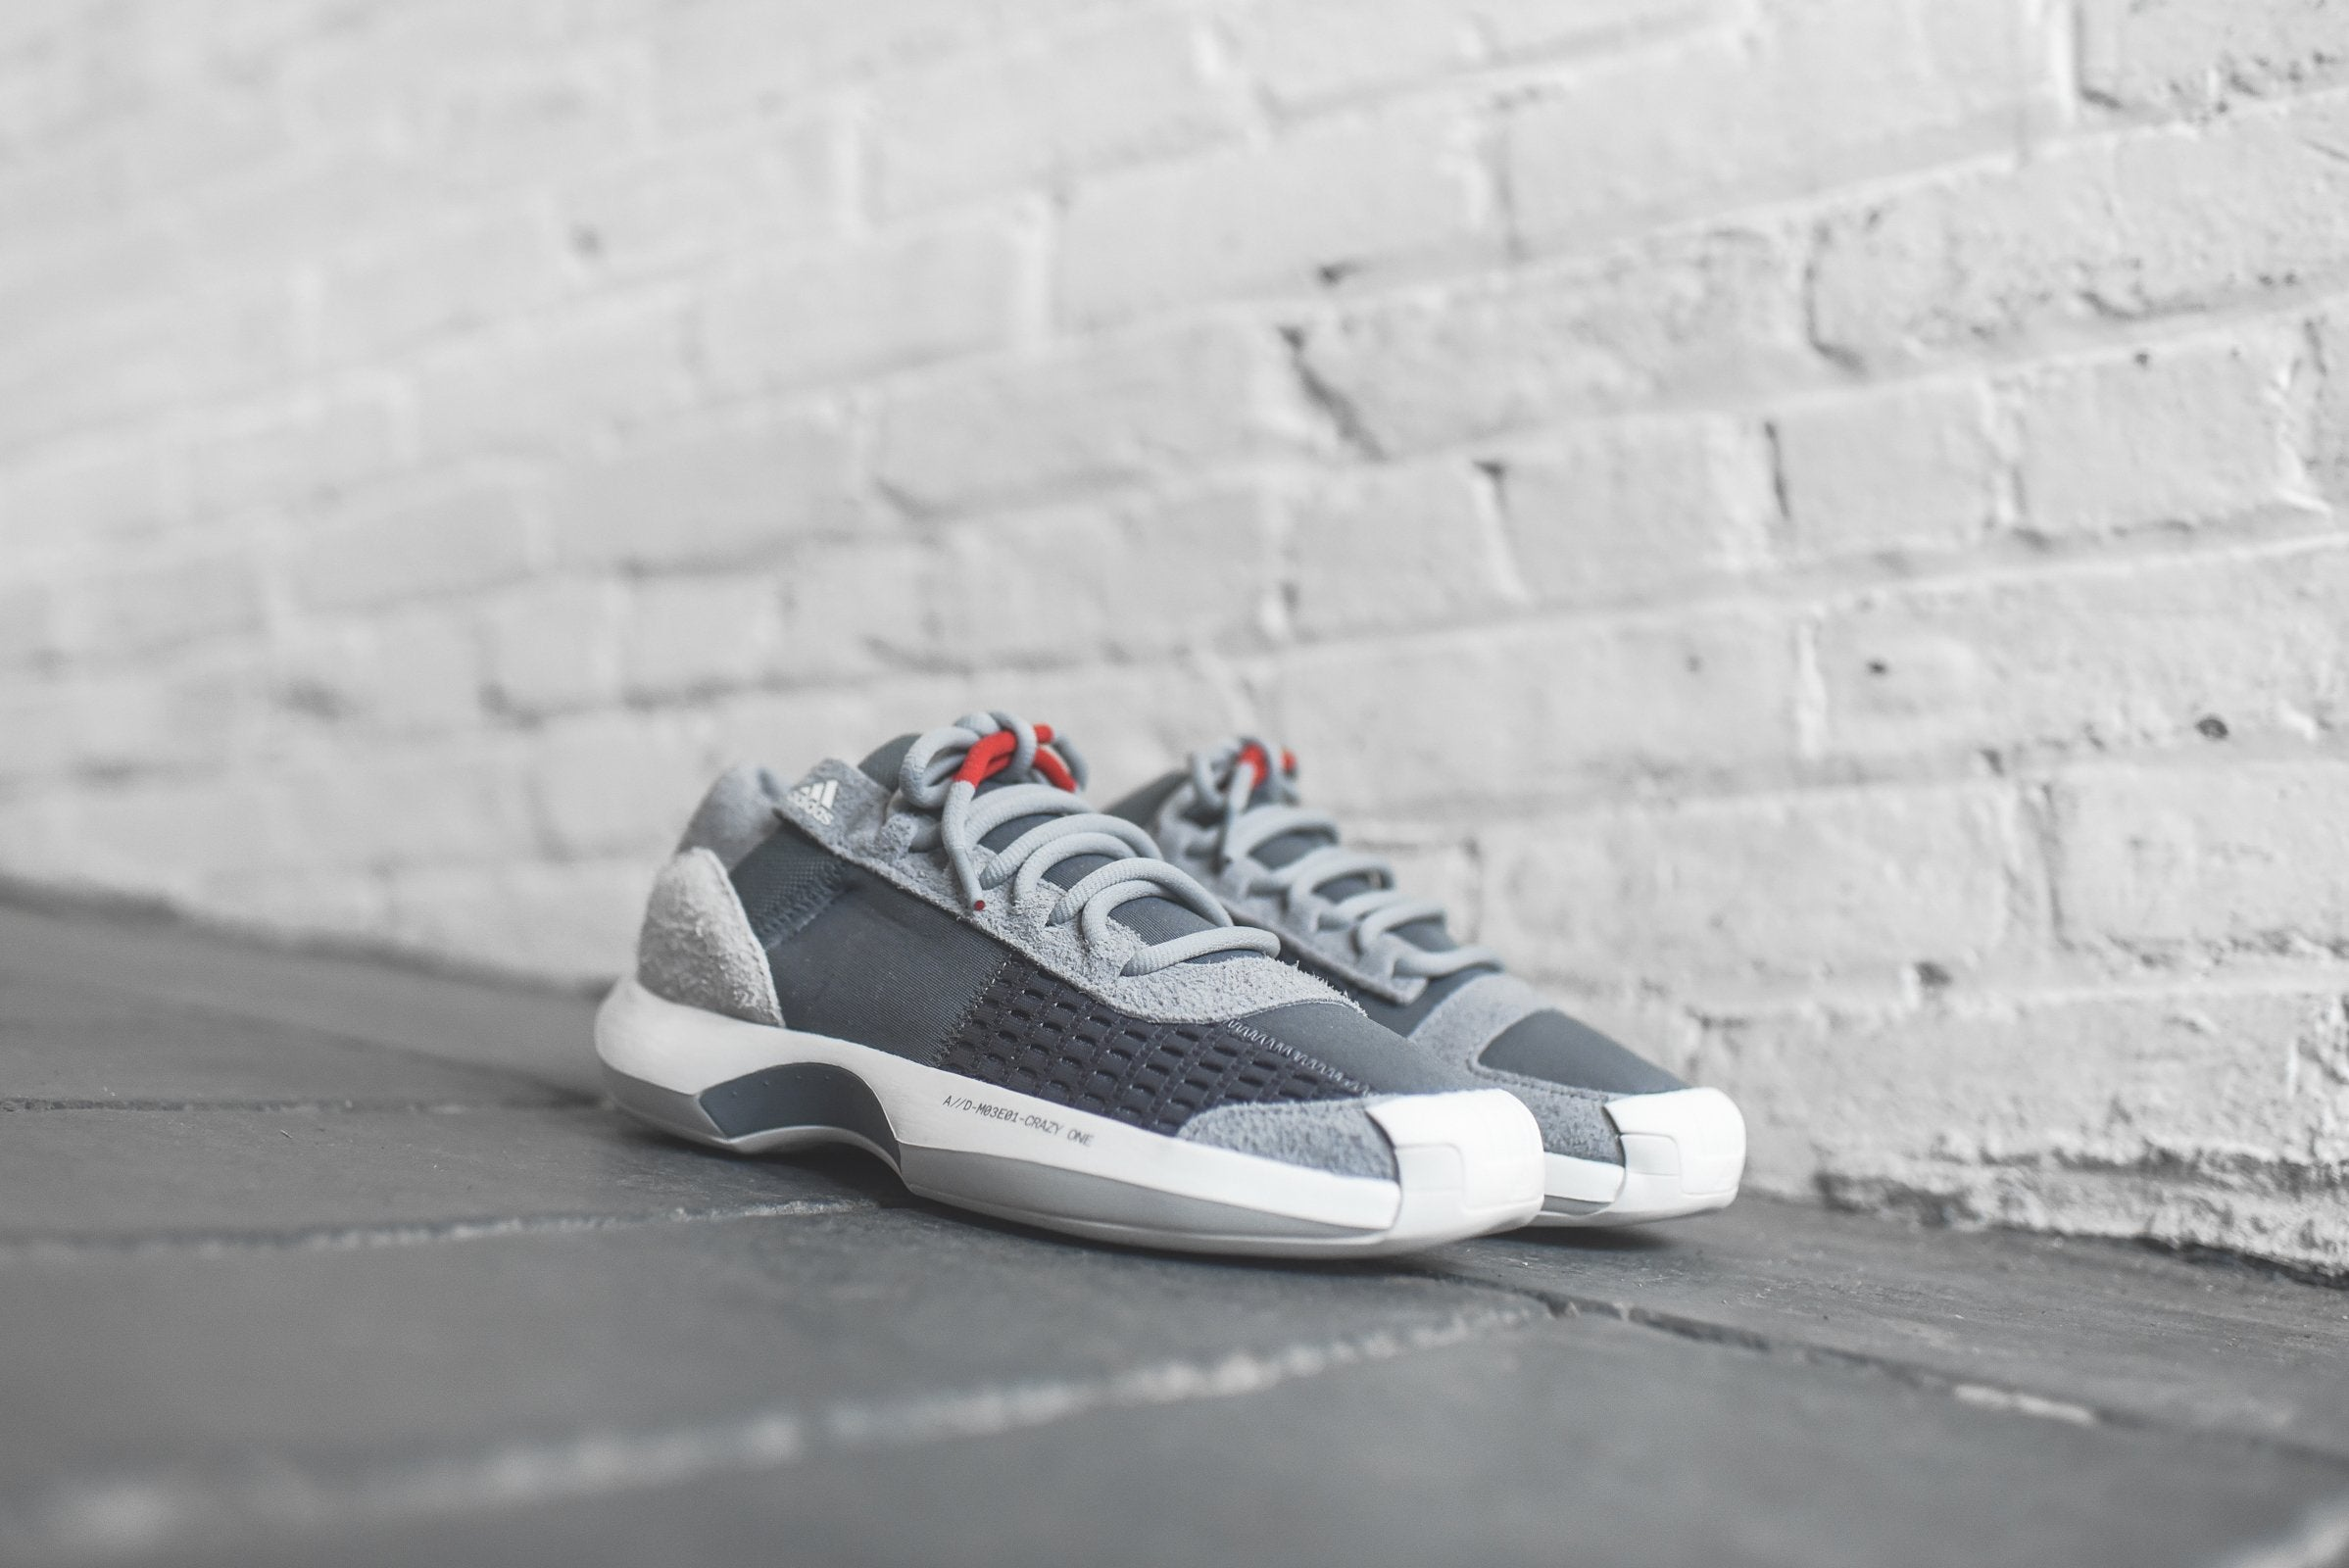 cheaper 38f8e d9339 ... adidas consortium crazy 1 adv grey red